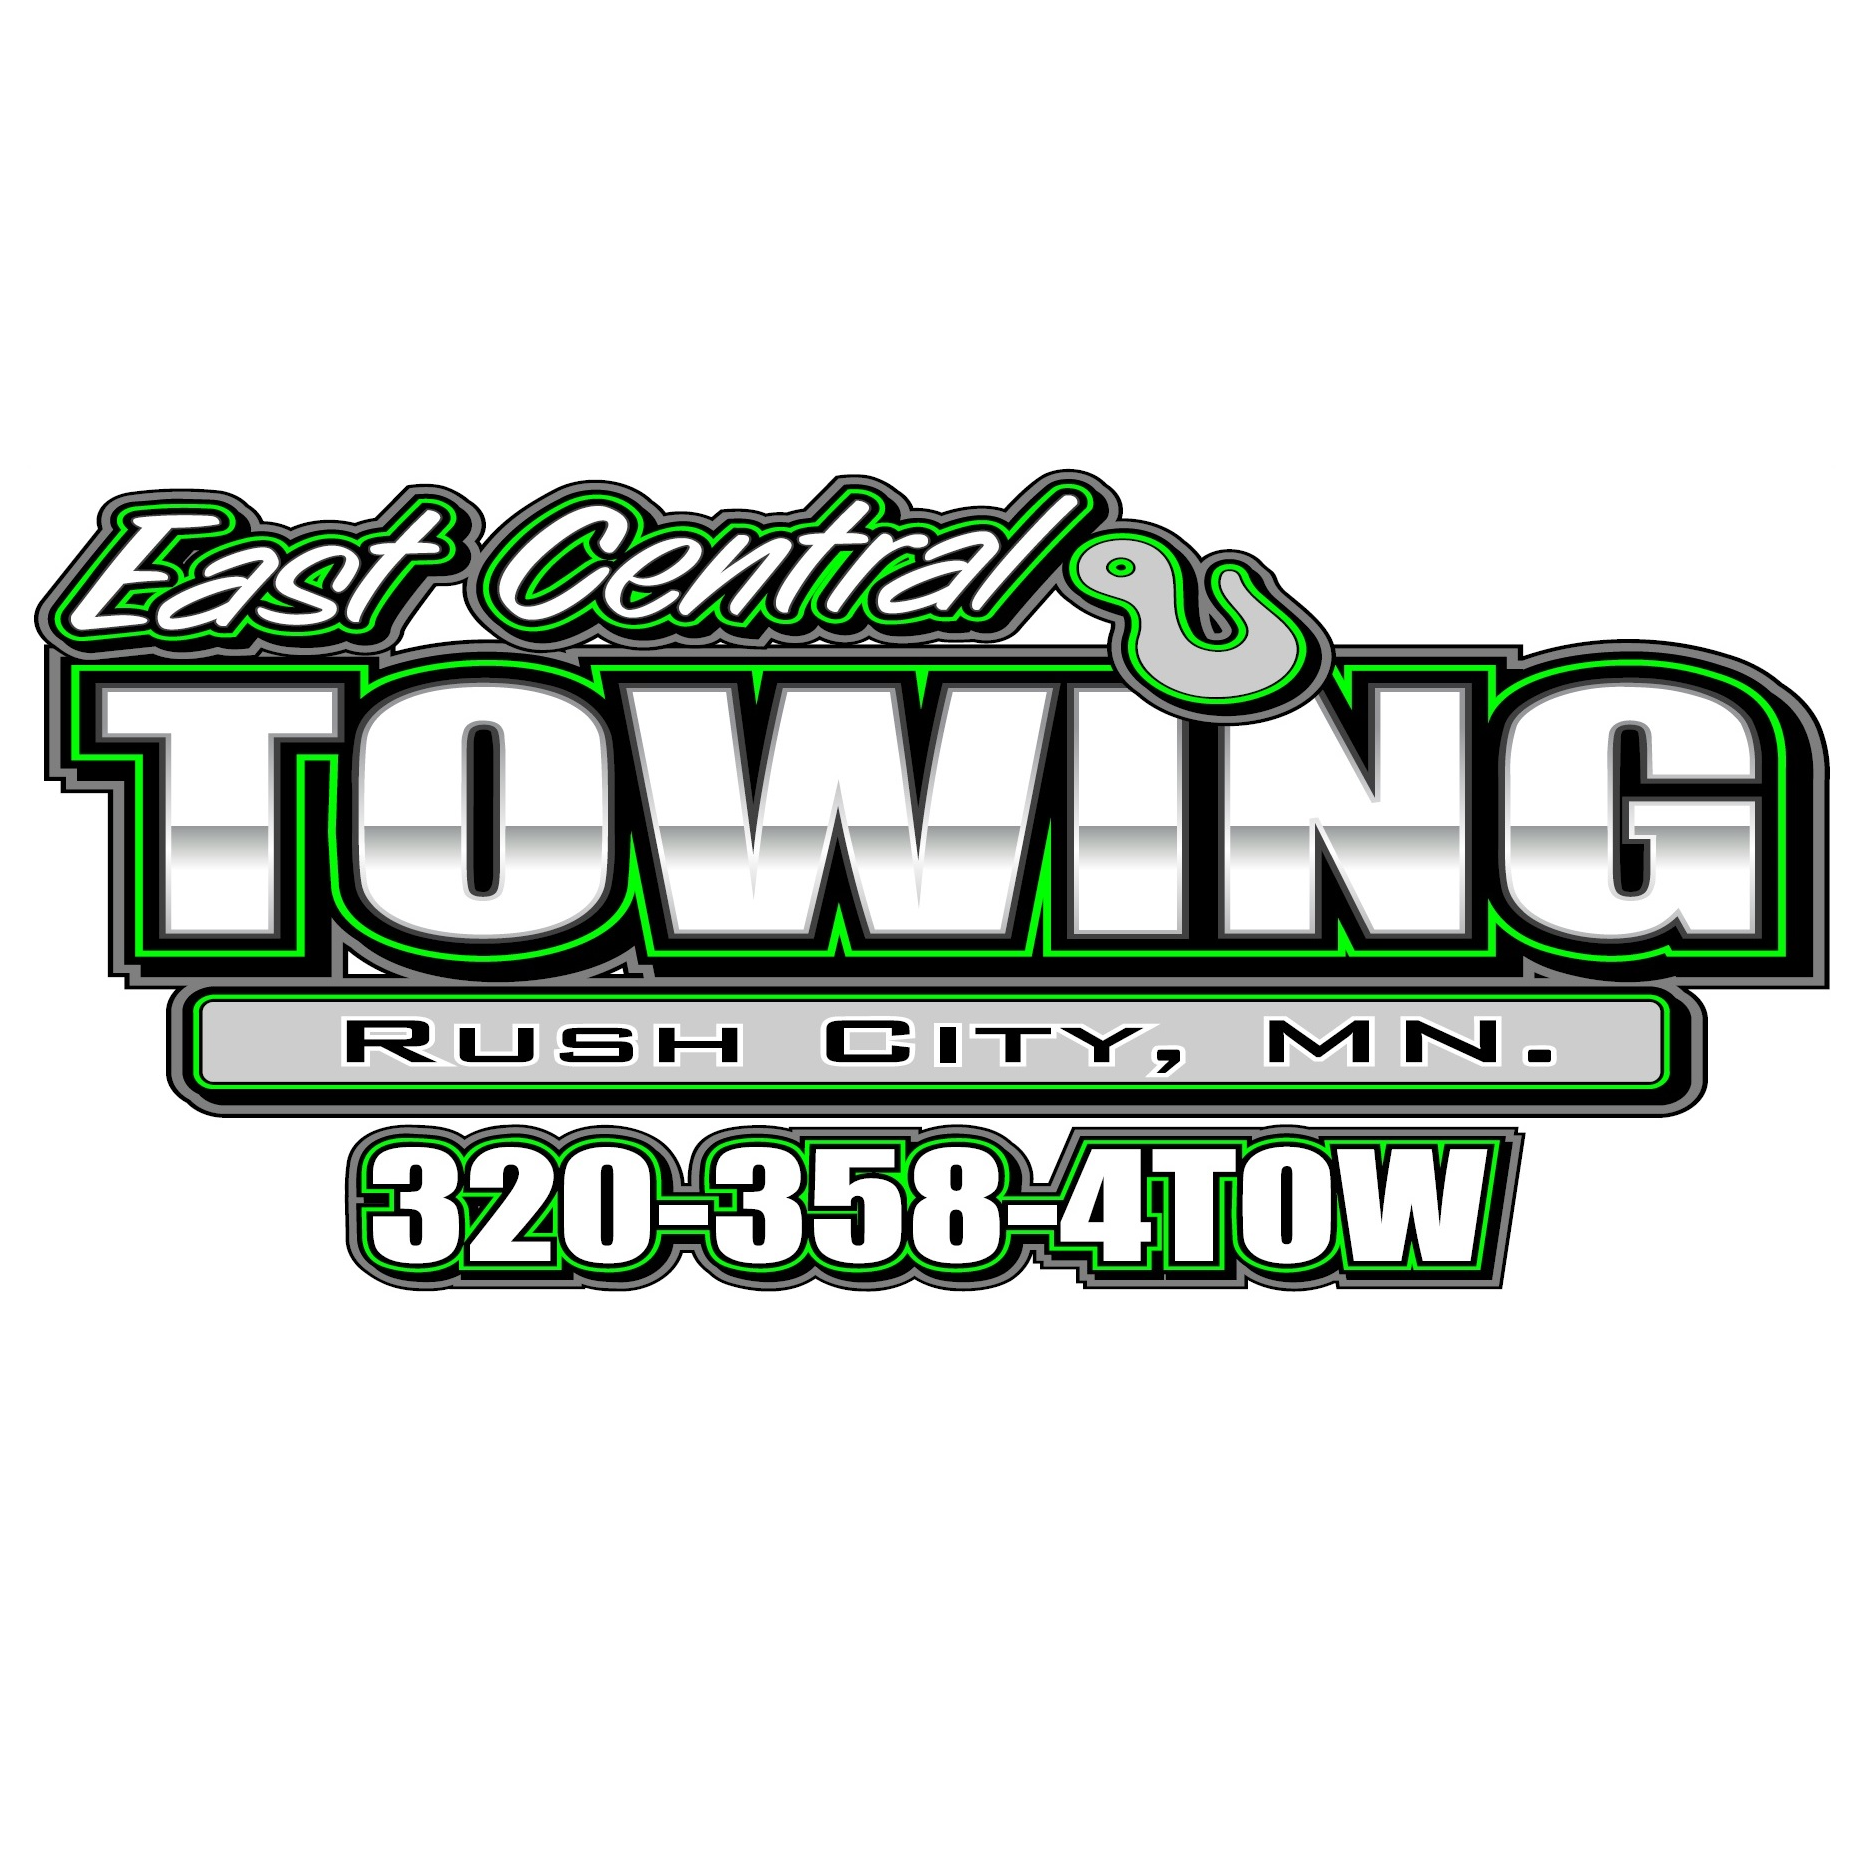 East Central Towing logo